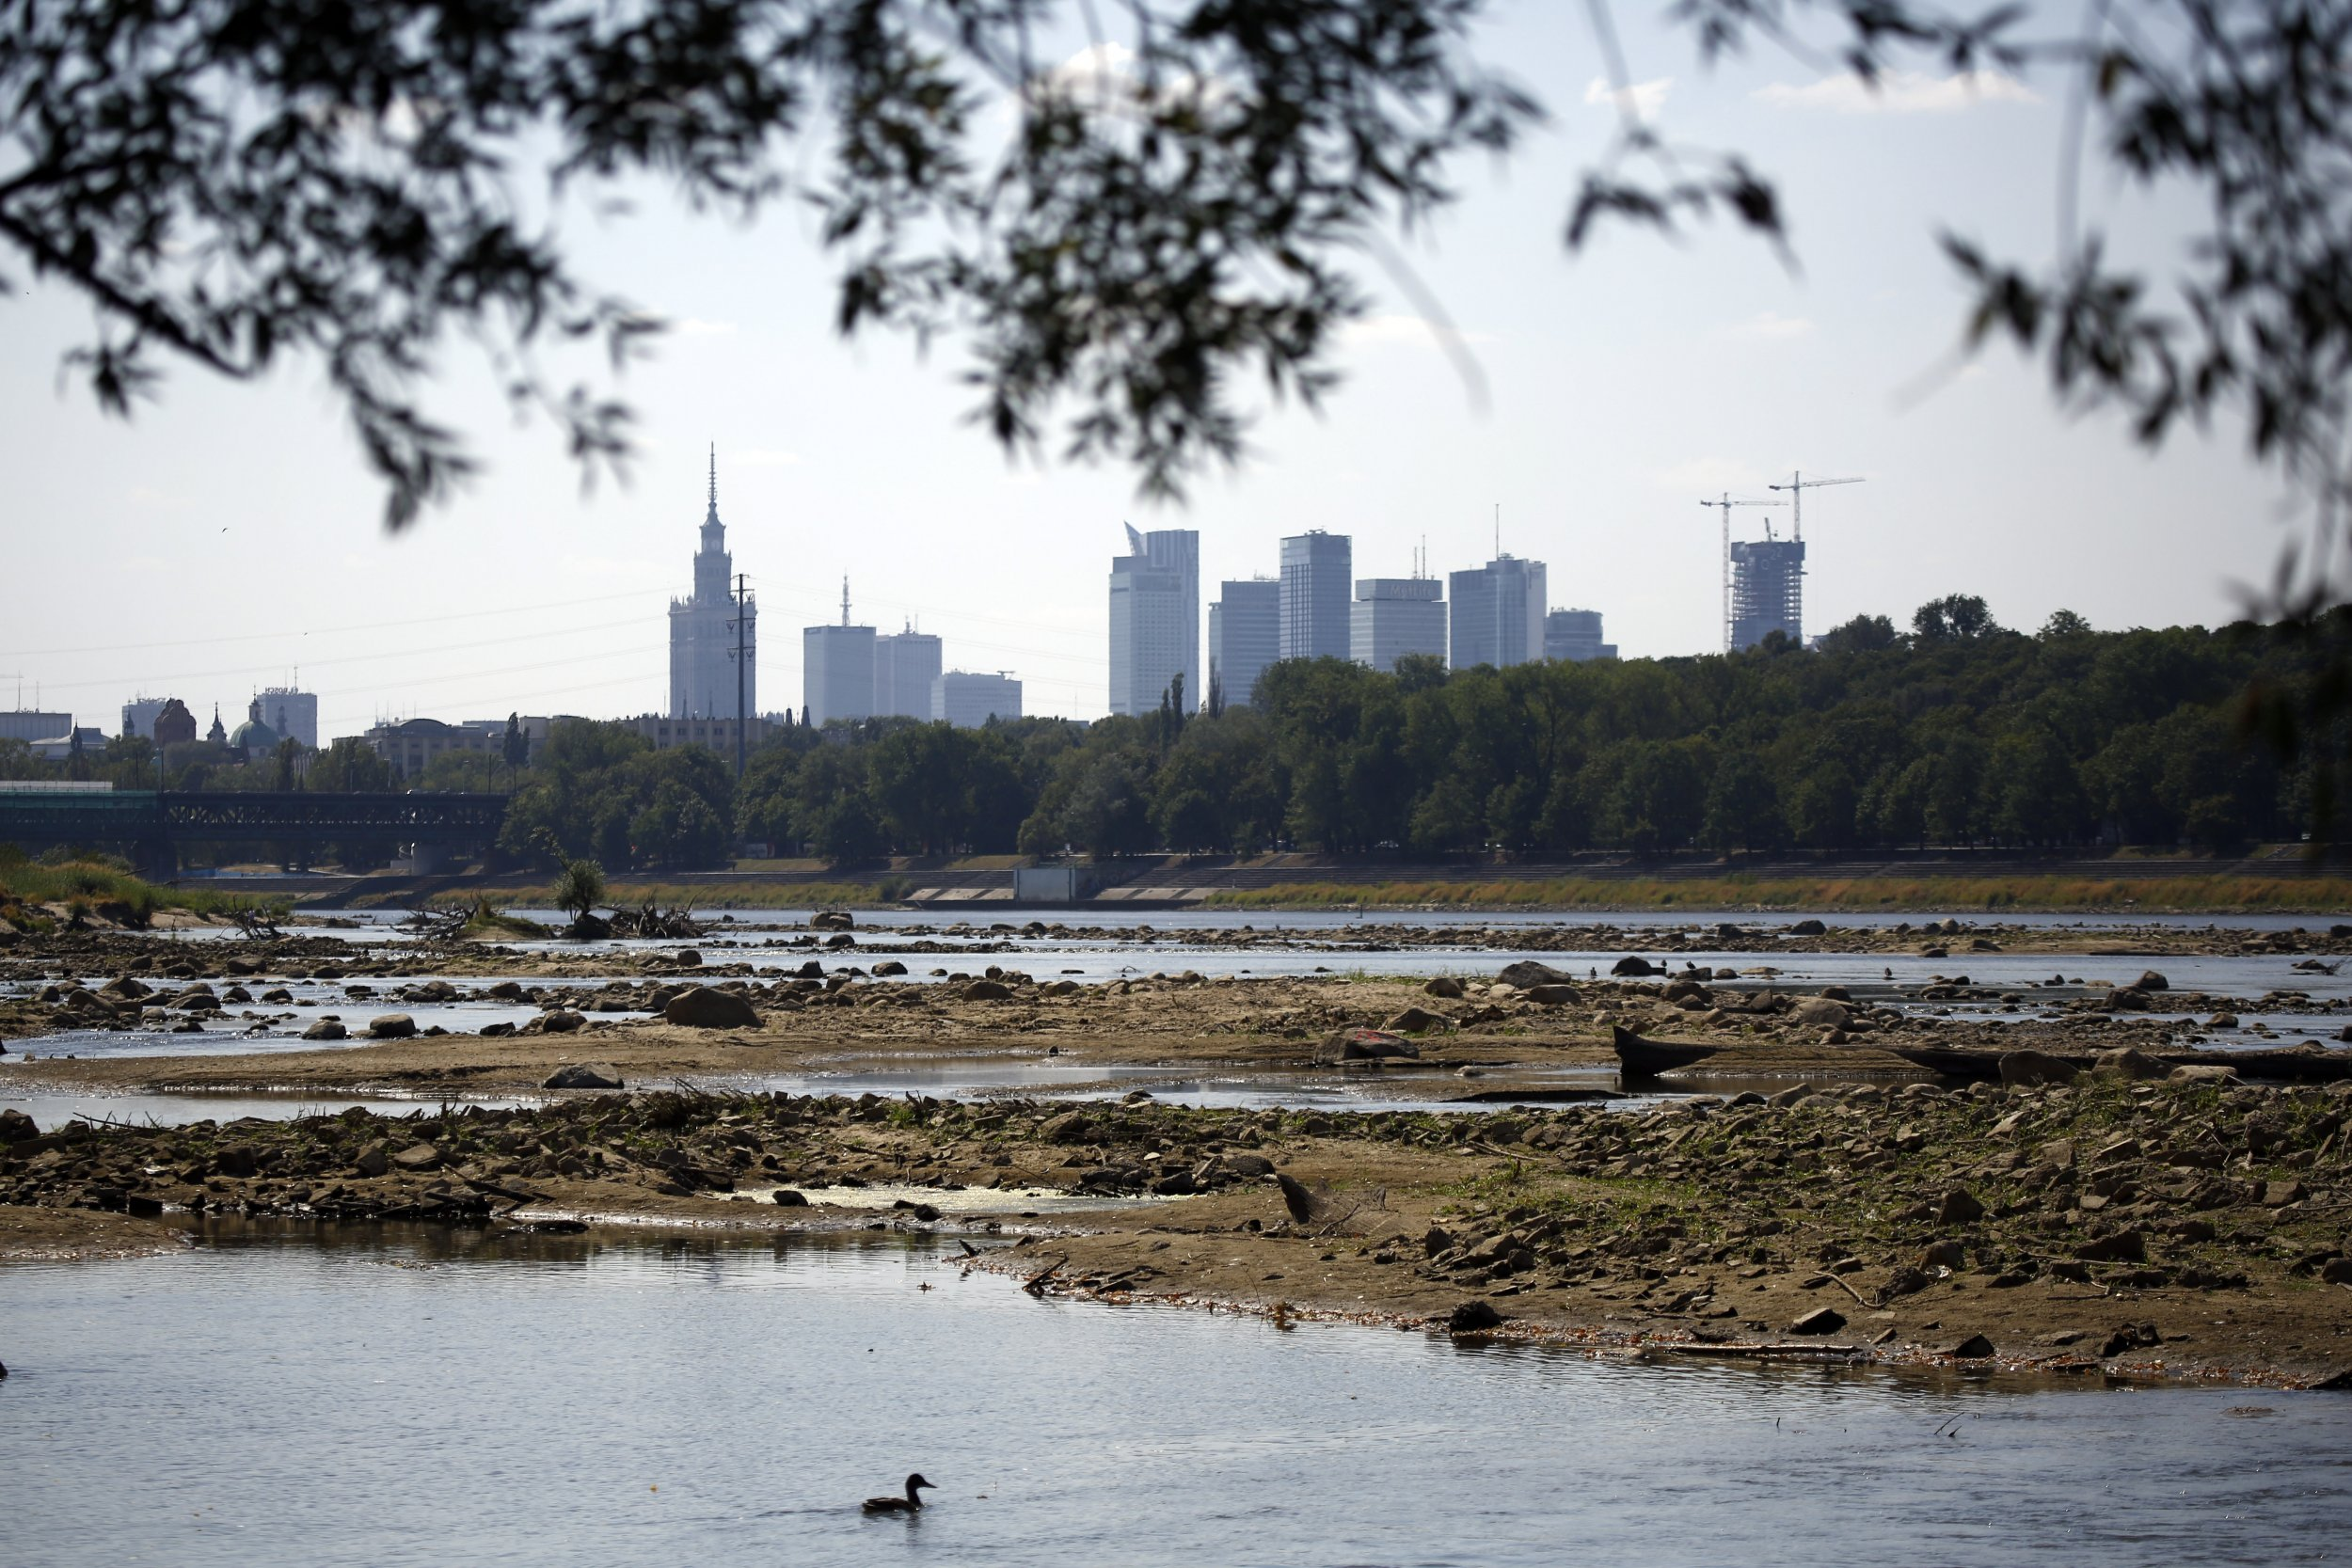 Drought in Poland Reveals World War II Artifacts in River